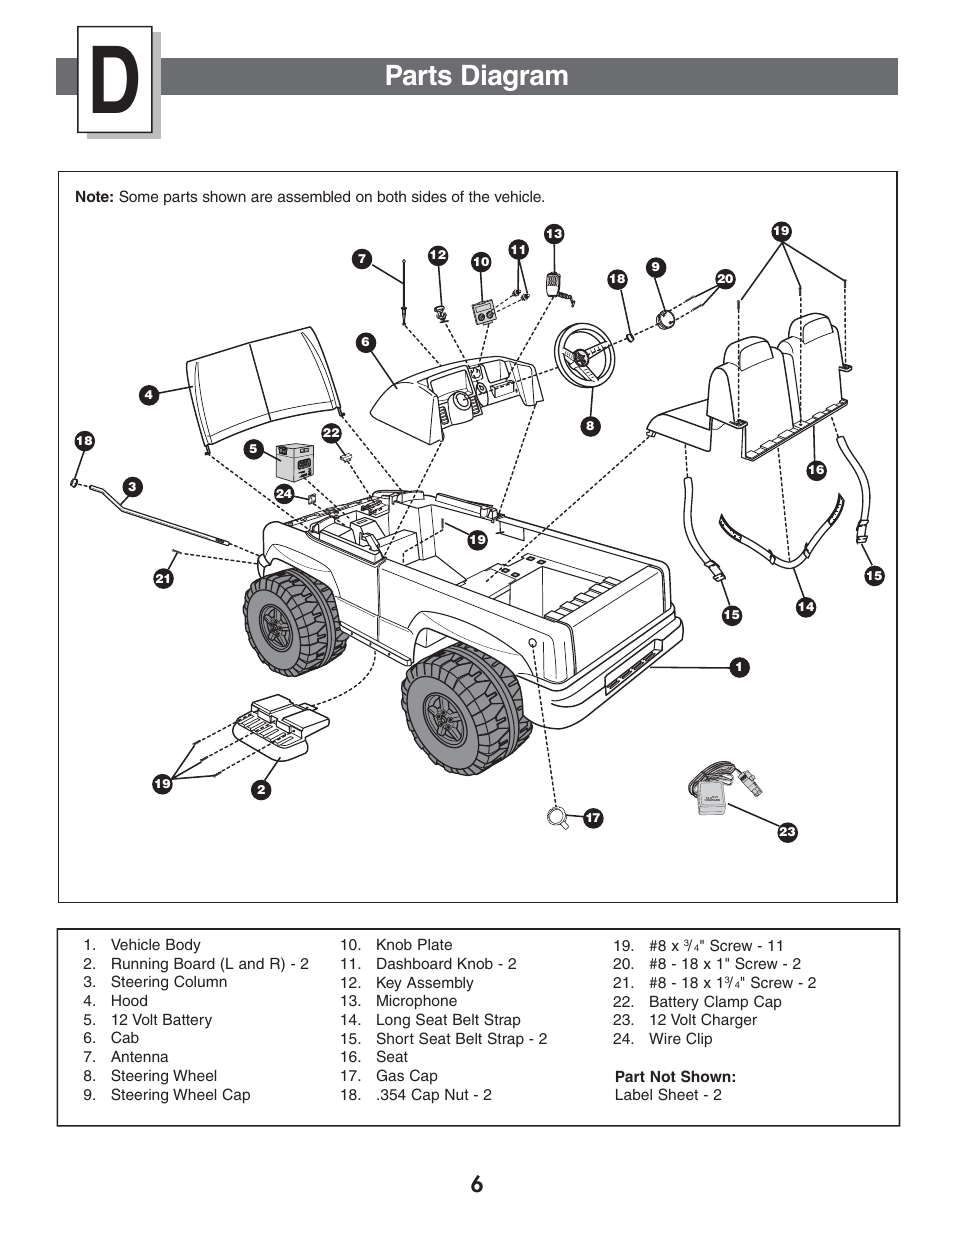 hight resolution of parts diagram fisher price power wheels by fisher price chevrolet silverado b1476 user manual page 6 32